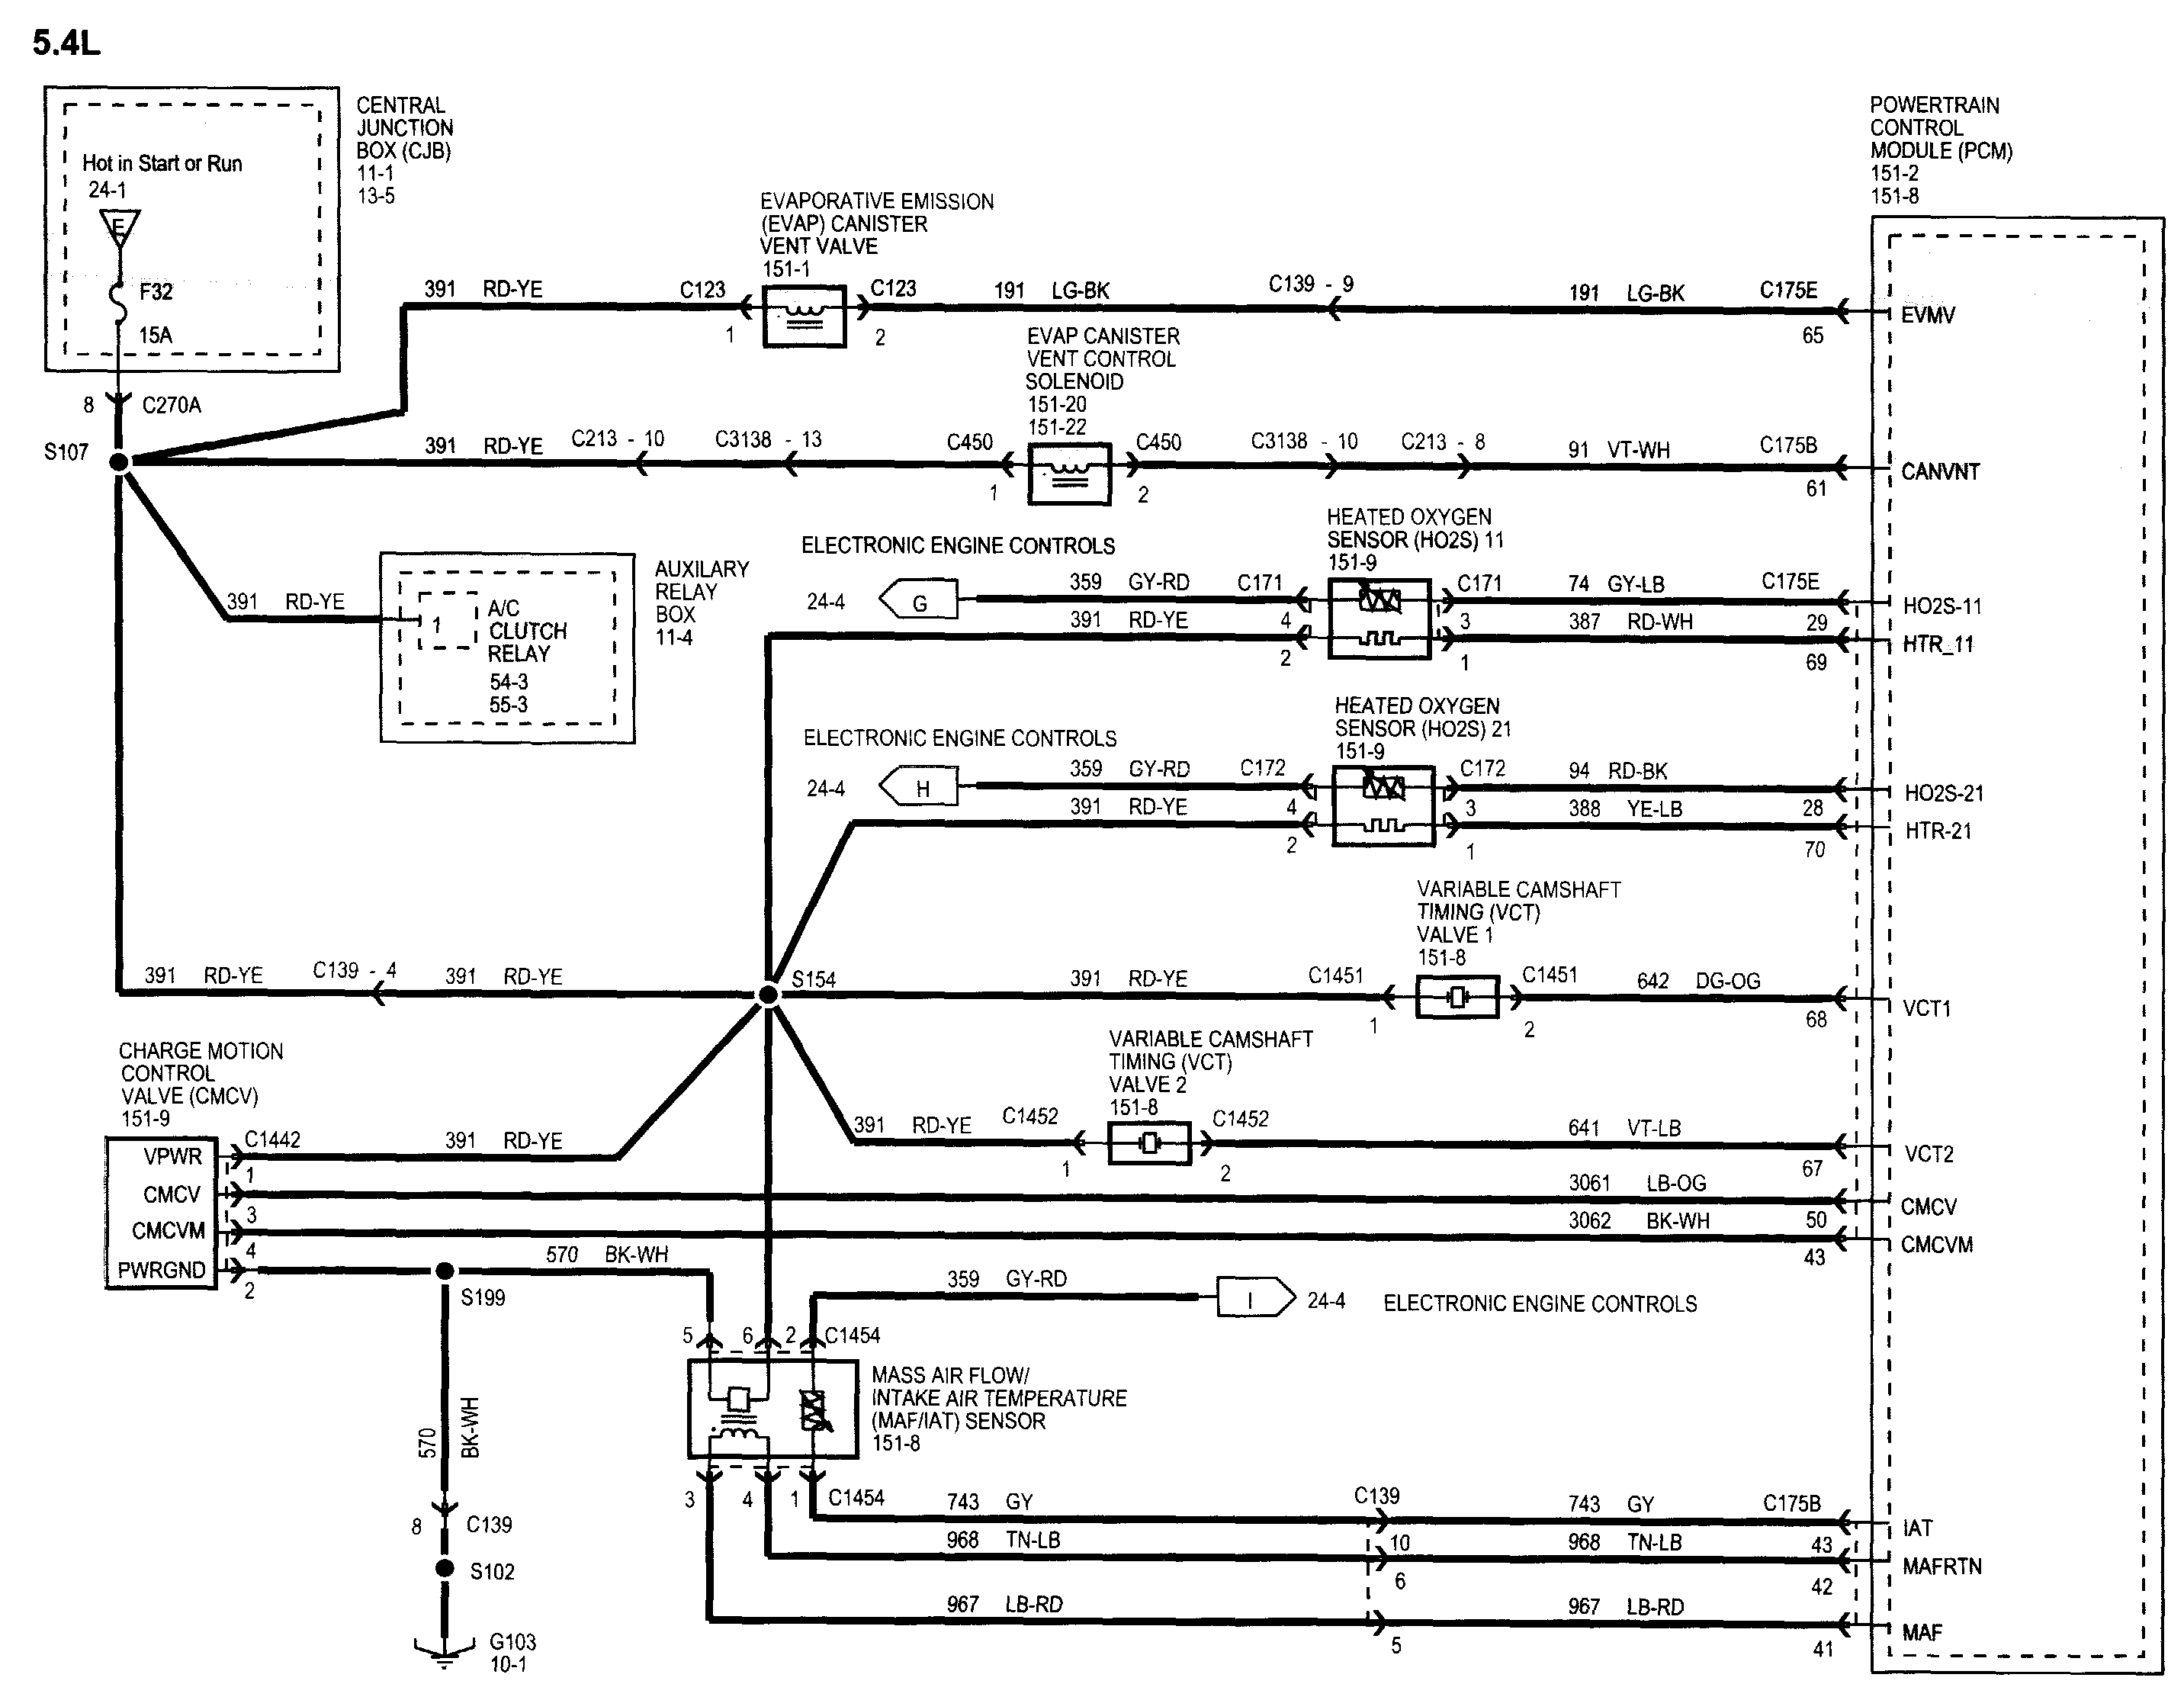 trying to find wiring diagram for 2005 ford f150 fx4 5.4l front passenger  side o2 sensor  justanswer